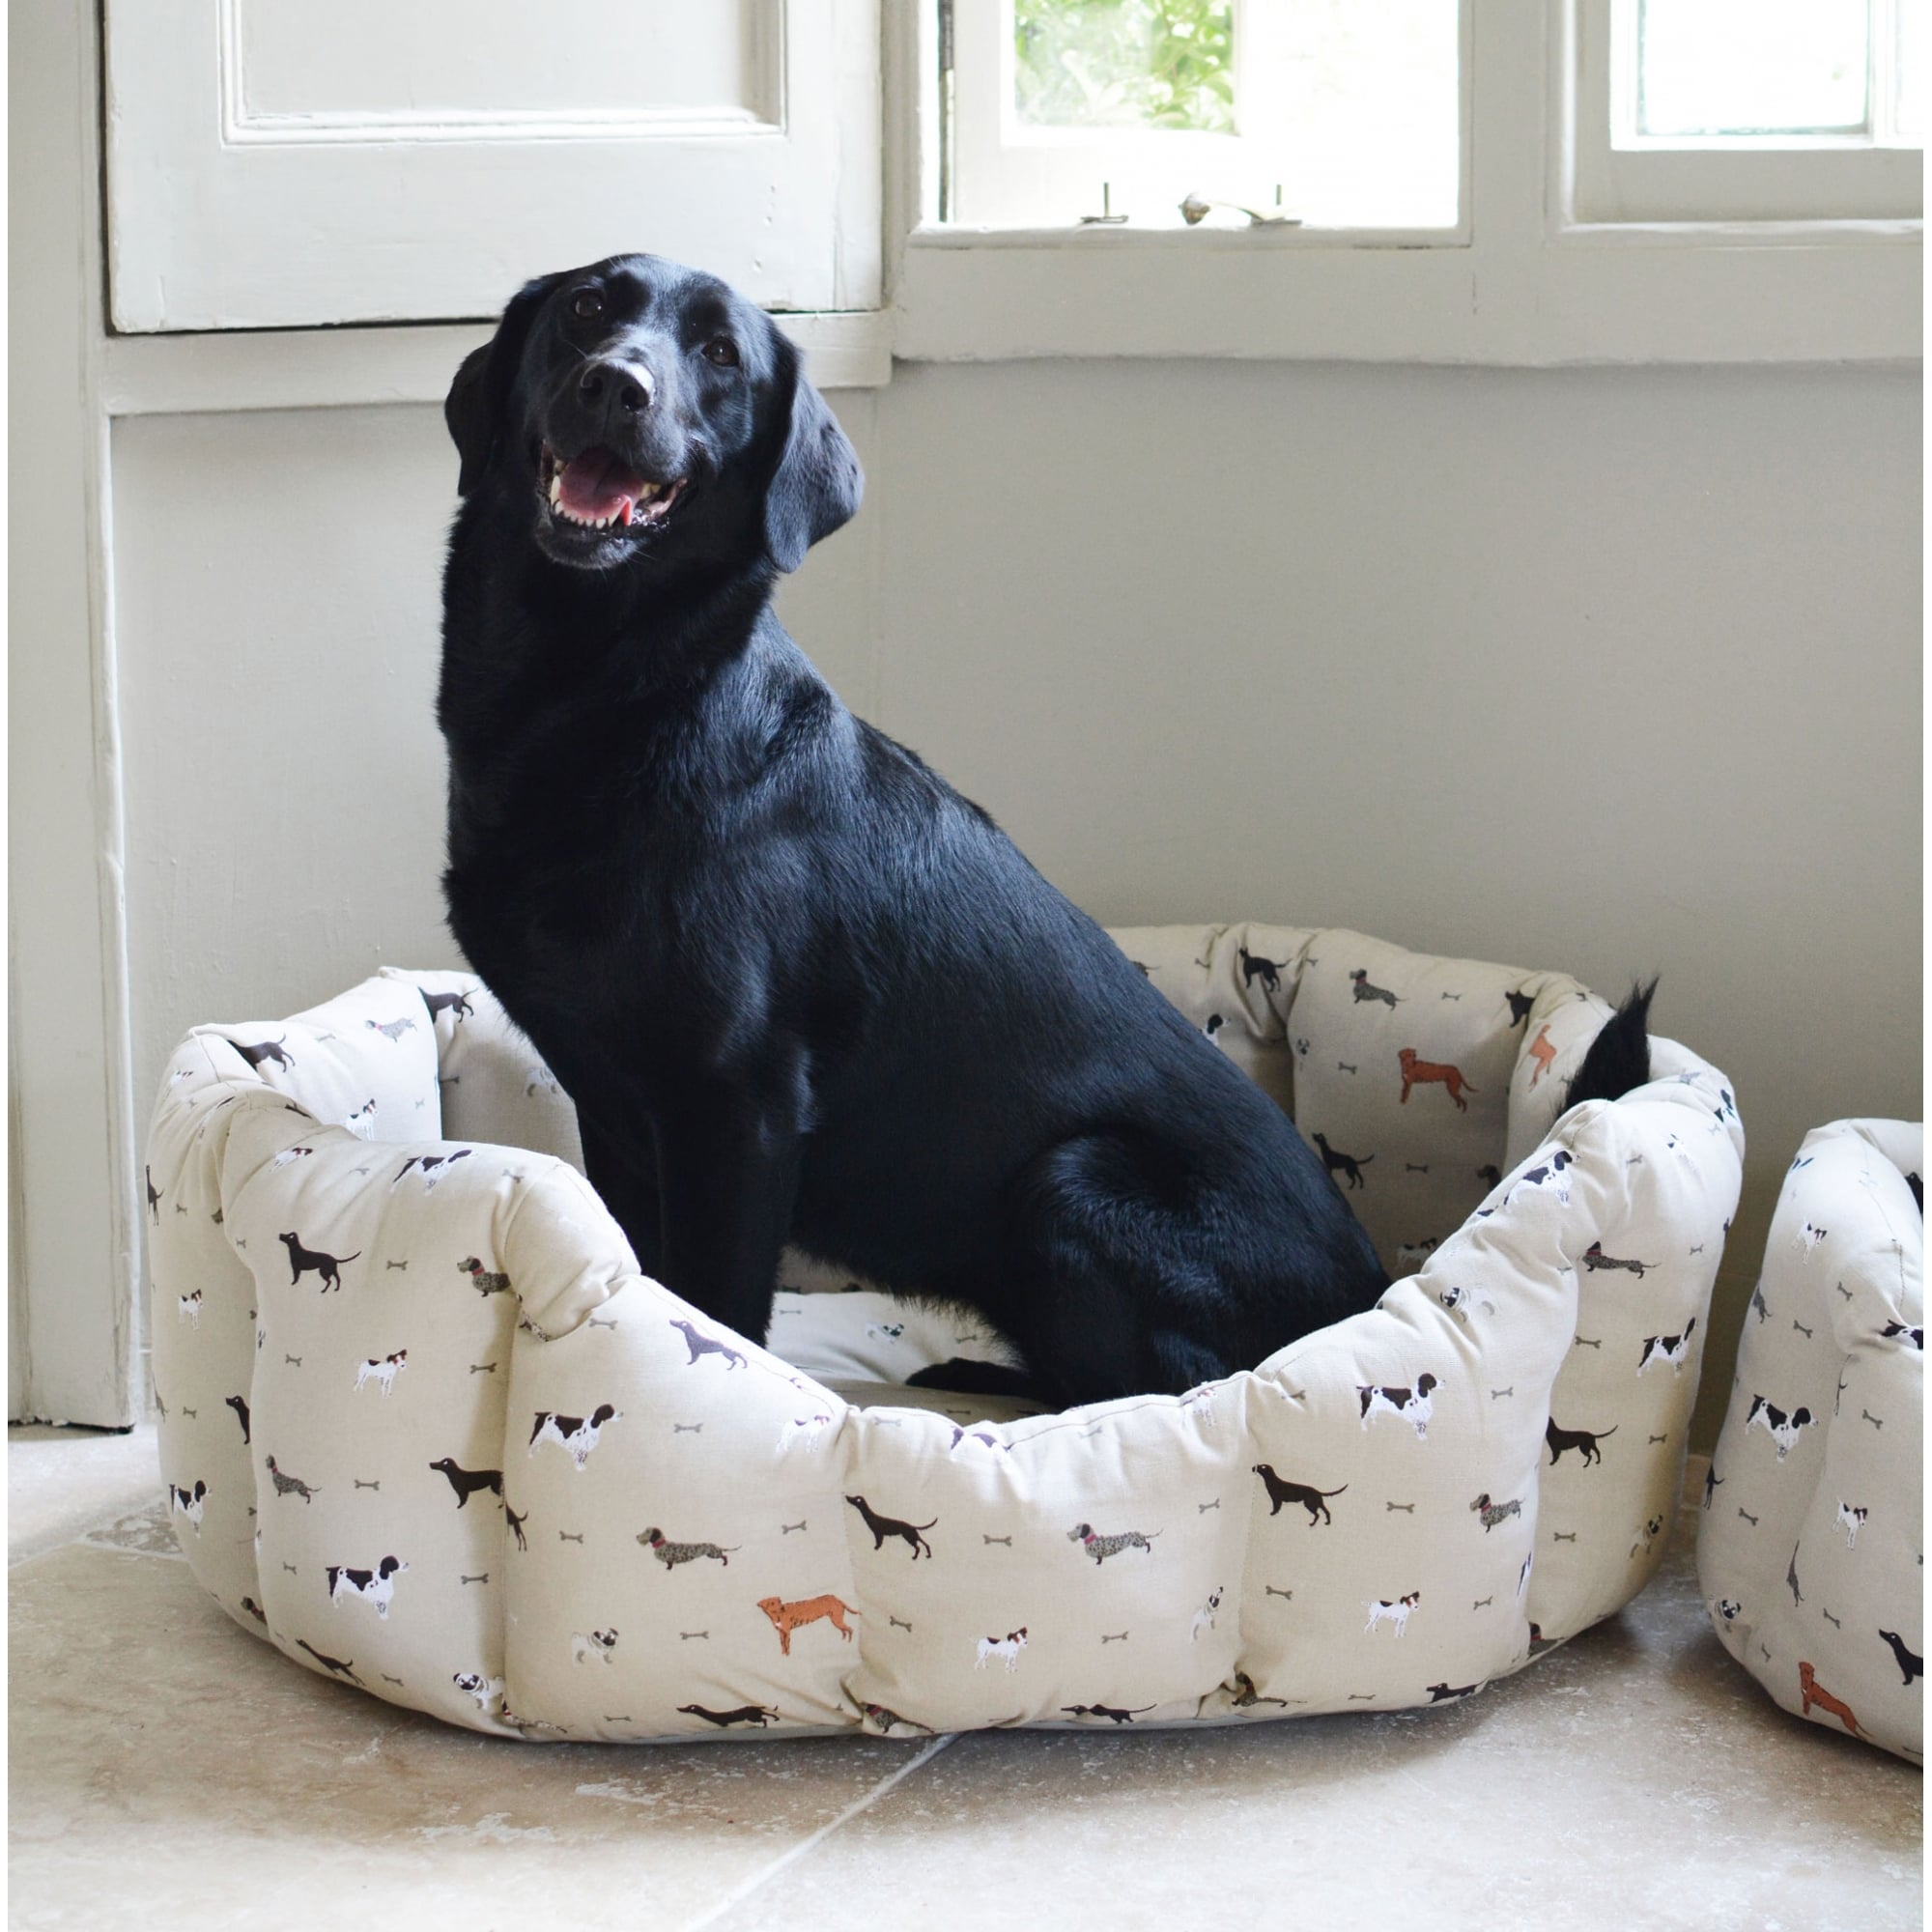 best pet beds happiness for dog dogs make large sure couch bed howls your with beasleys small